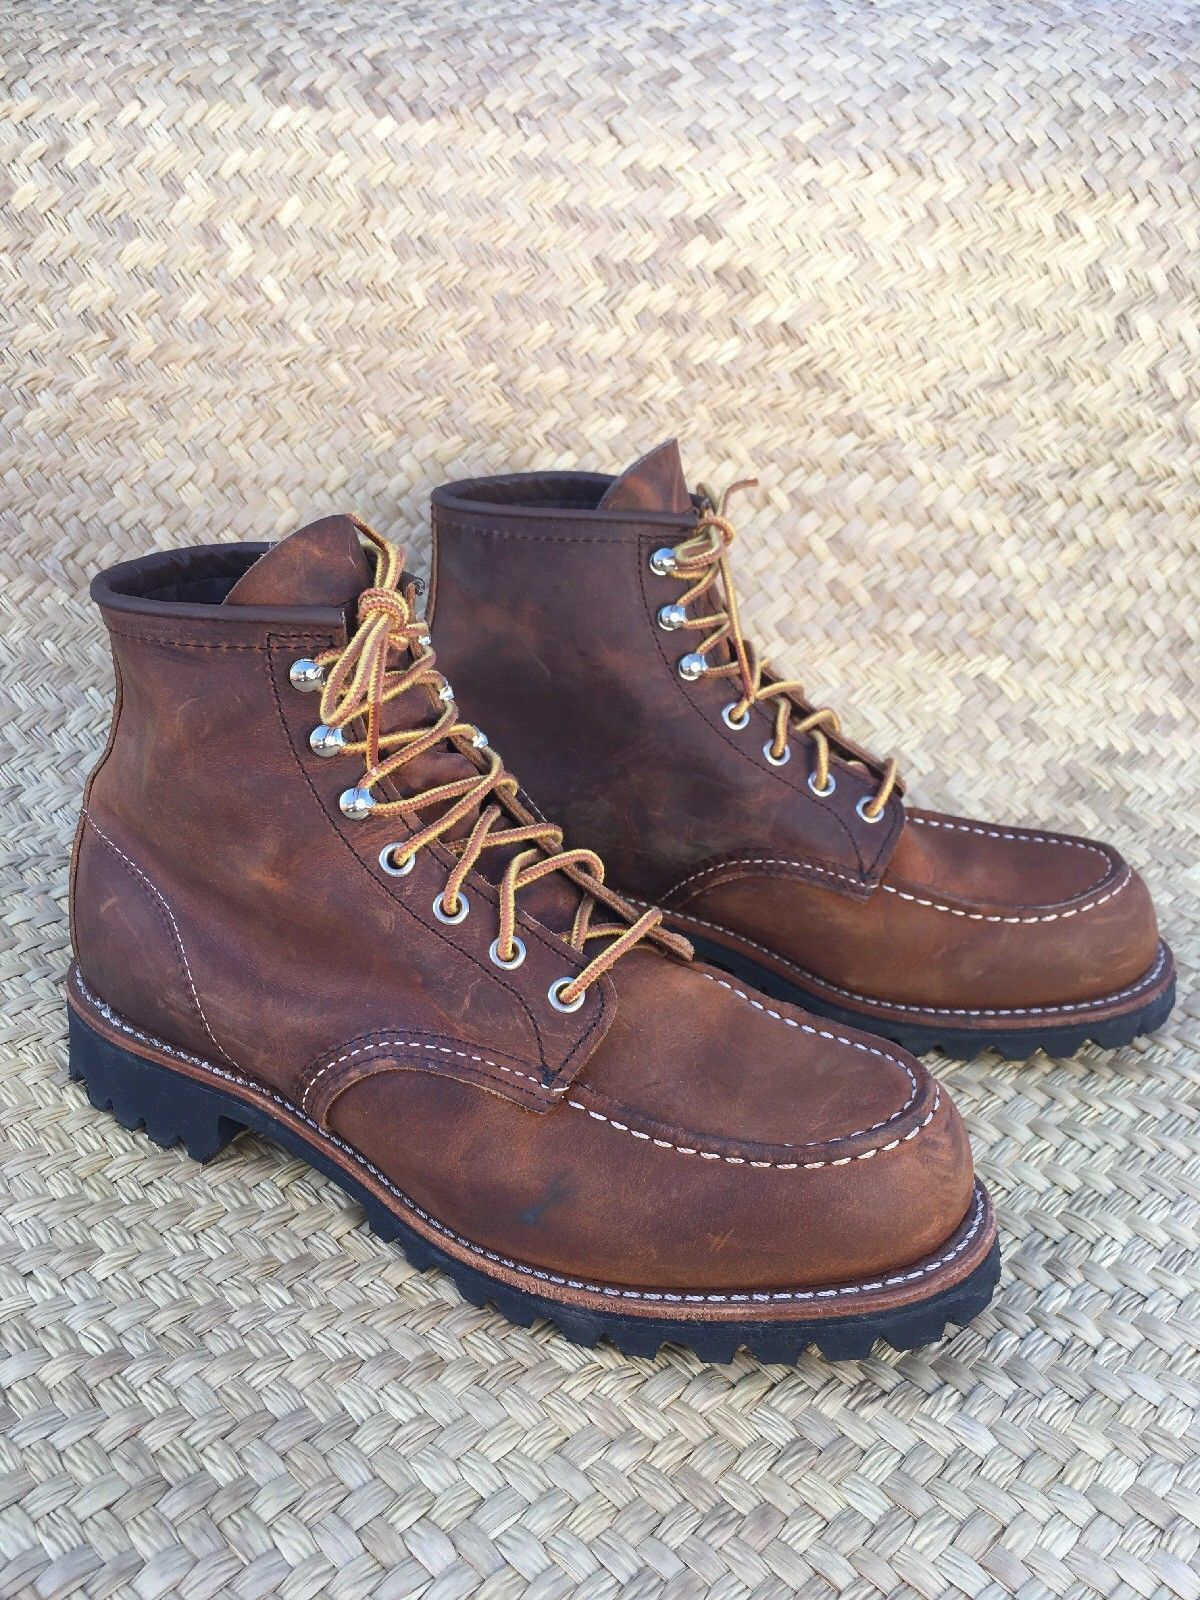 858ade88723 Details about Red Wing Men's 1907 Boots Classic Moc Toe Leather ...